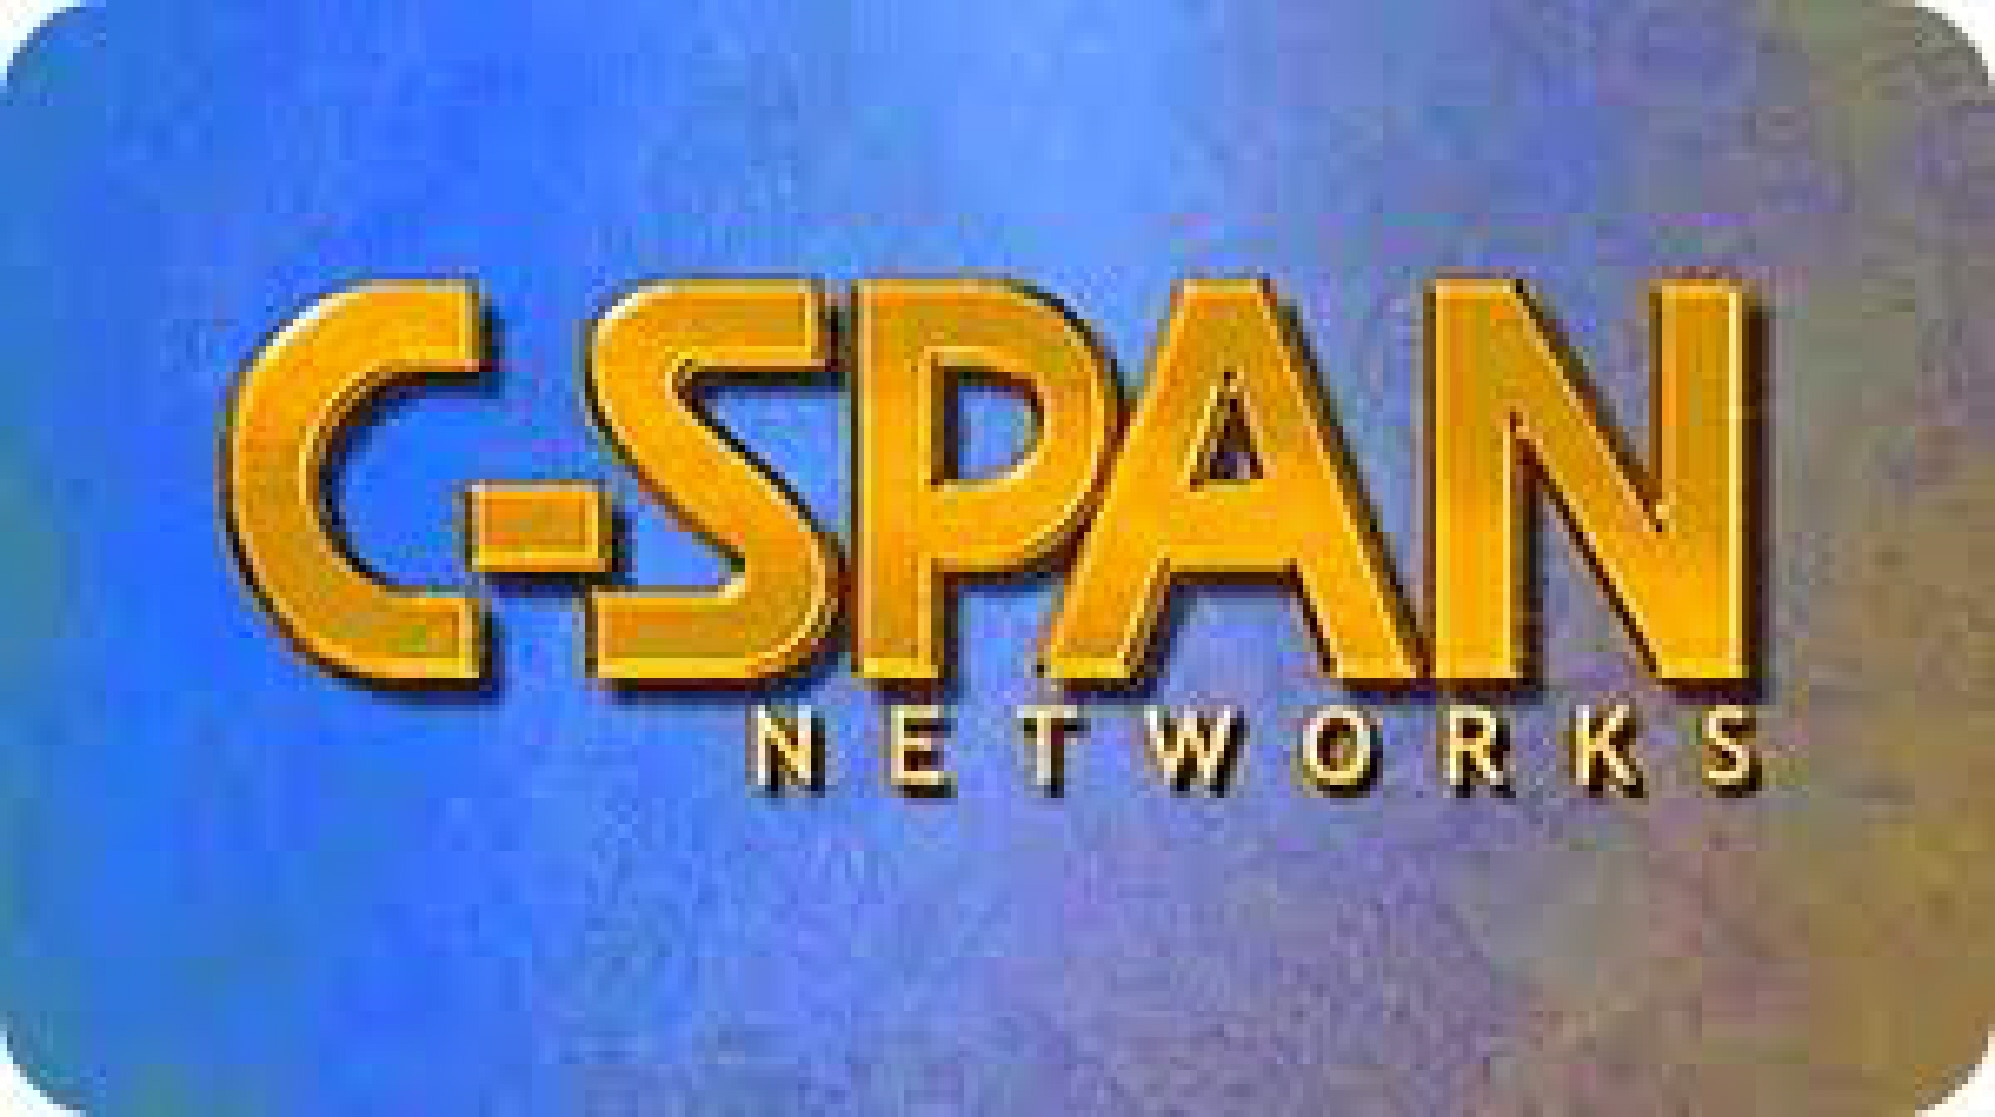 It is an American based current affairs cable and satellite television station established on 19 March 1979 CSPAN means CableSatellite Public Affairs Network It